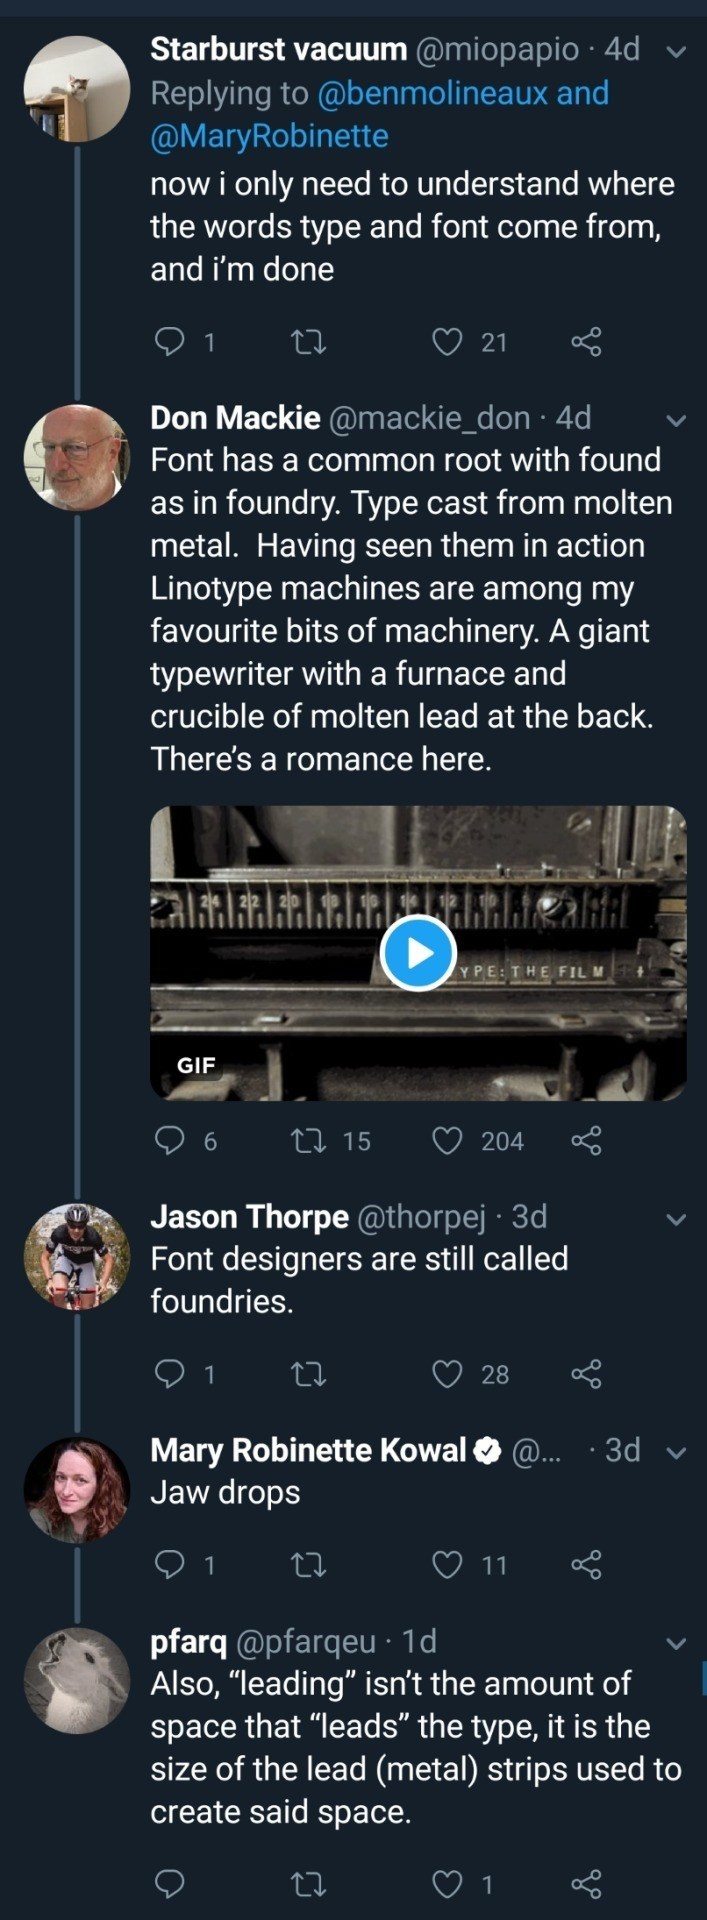 Text - Starburst vacuum @miopapio 4d Replying to @benmolineaux and @MaryRobinette now i only need to understand where the words type and font come from, V and i'm done 1 21 Don Mackie @mackie_don 4d Font has a common root with found as in foundry. Type cast from molten metal. Having seen them in action Linotype machines are among my favourite bits of machinery. A giant typewriter with a furnace and crucible of molten lead at the back. There's a romance here. 2 2 20 Y PE: THE FIL M GIF L15 204 Ja